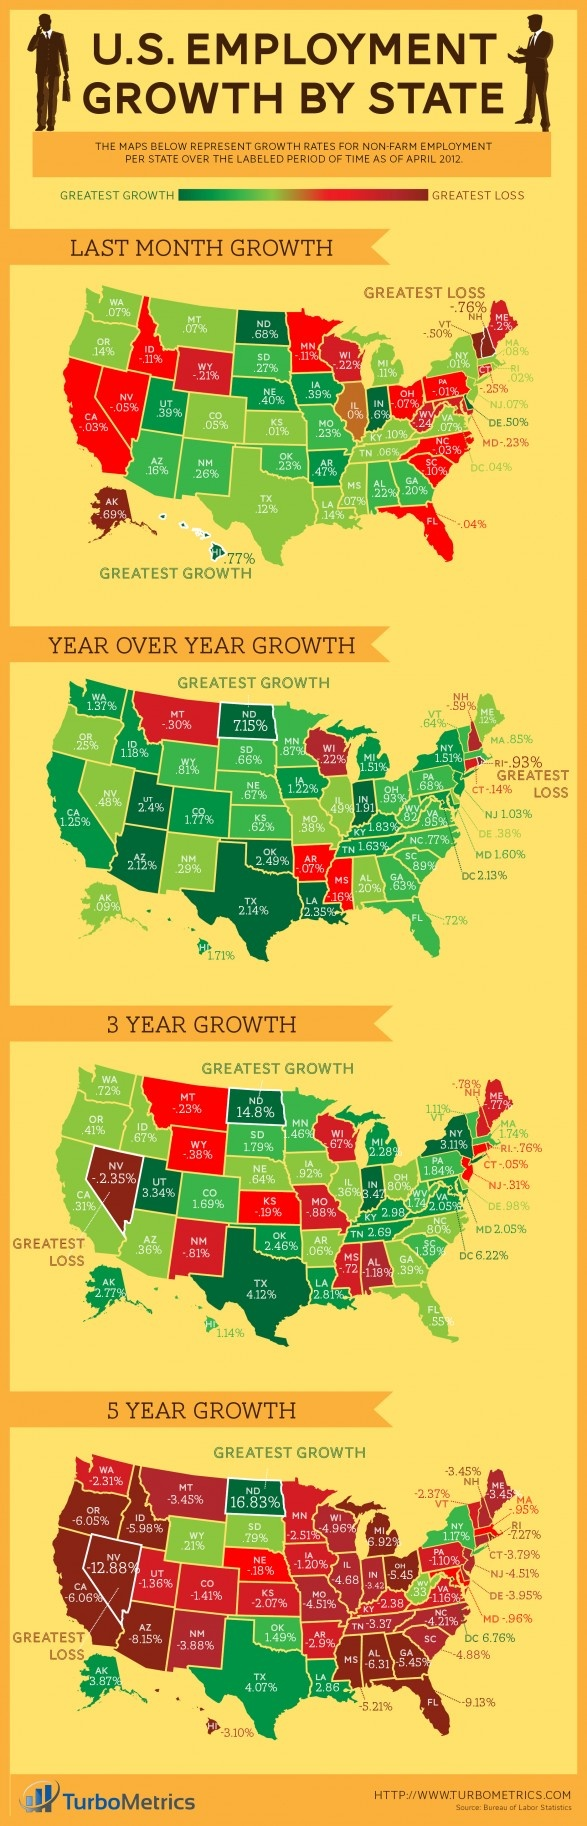 U S Employment Growth By State